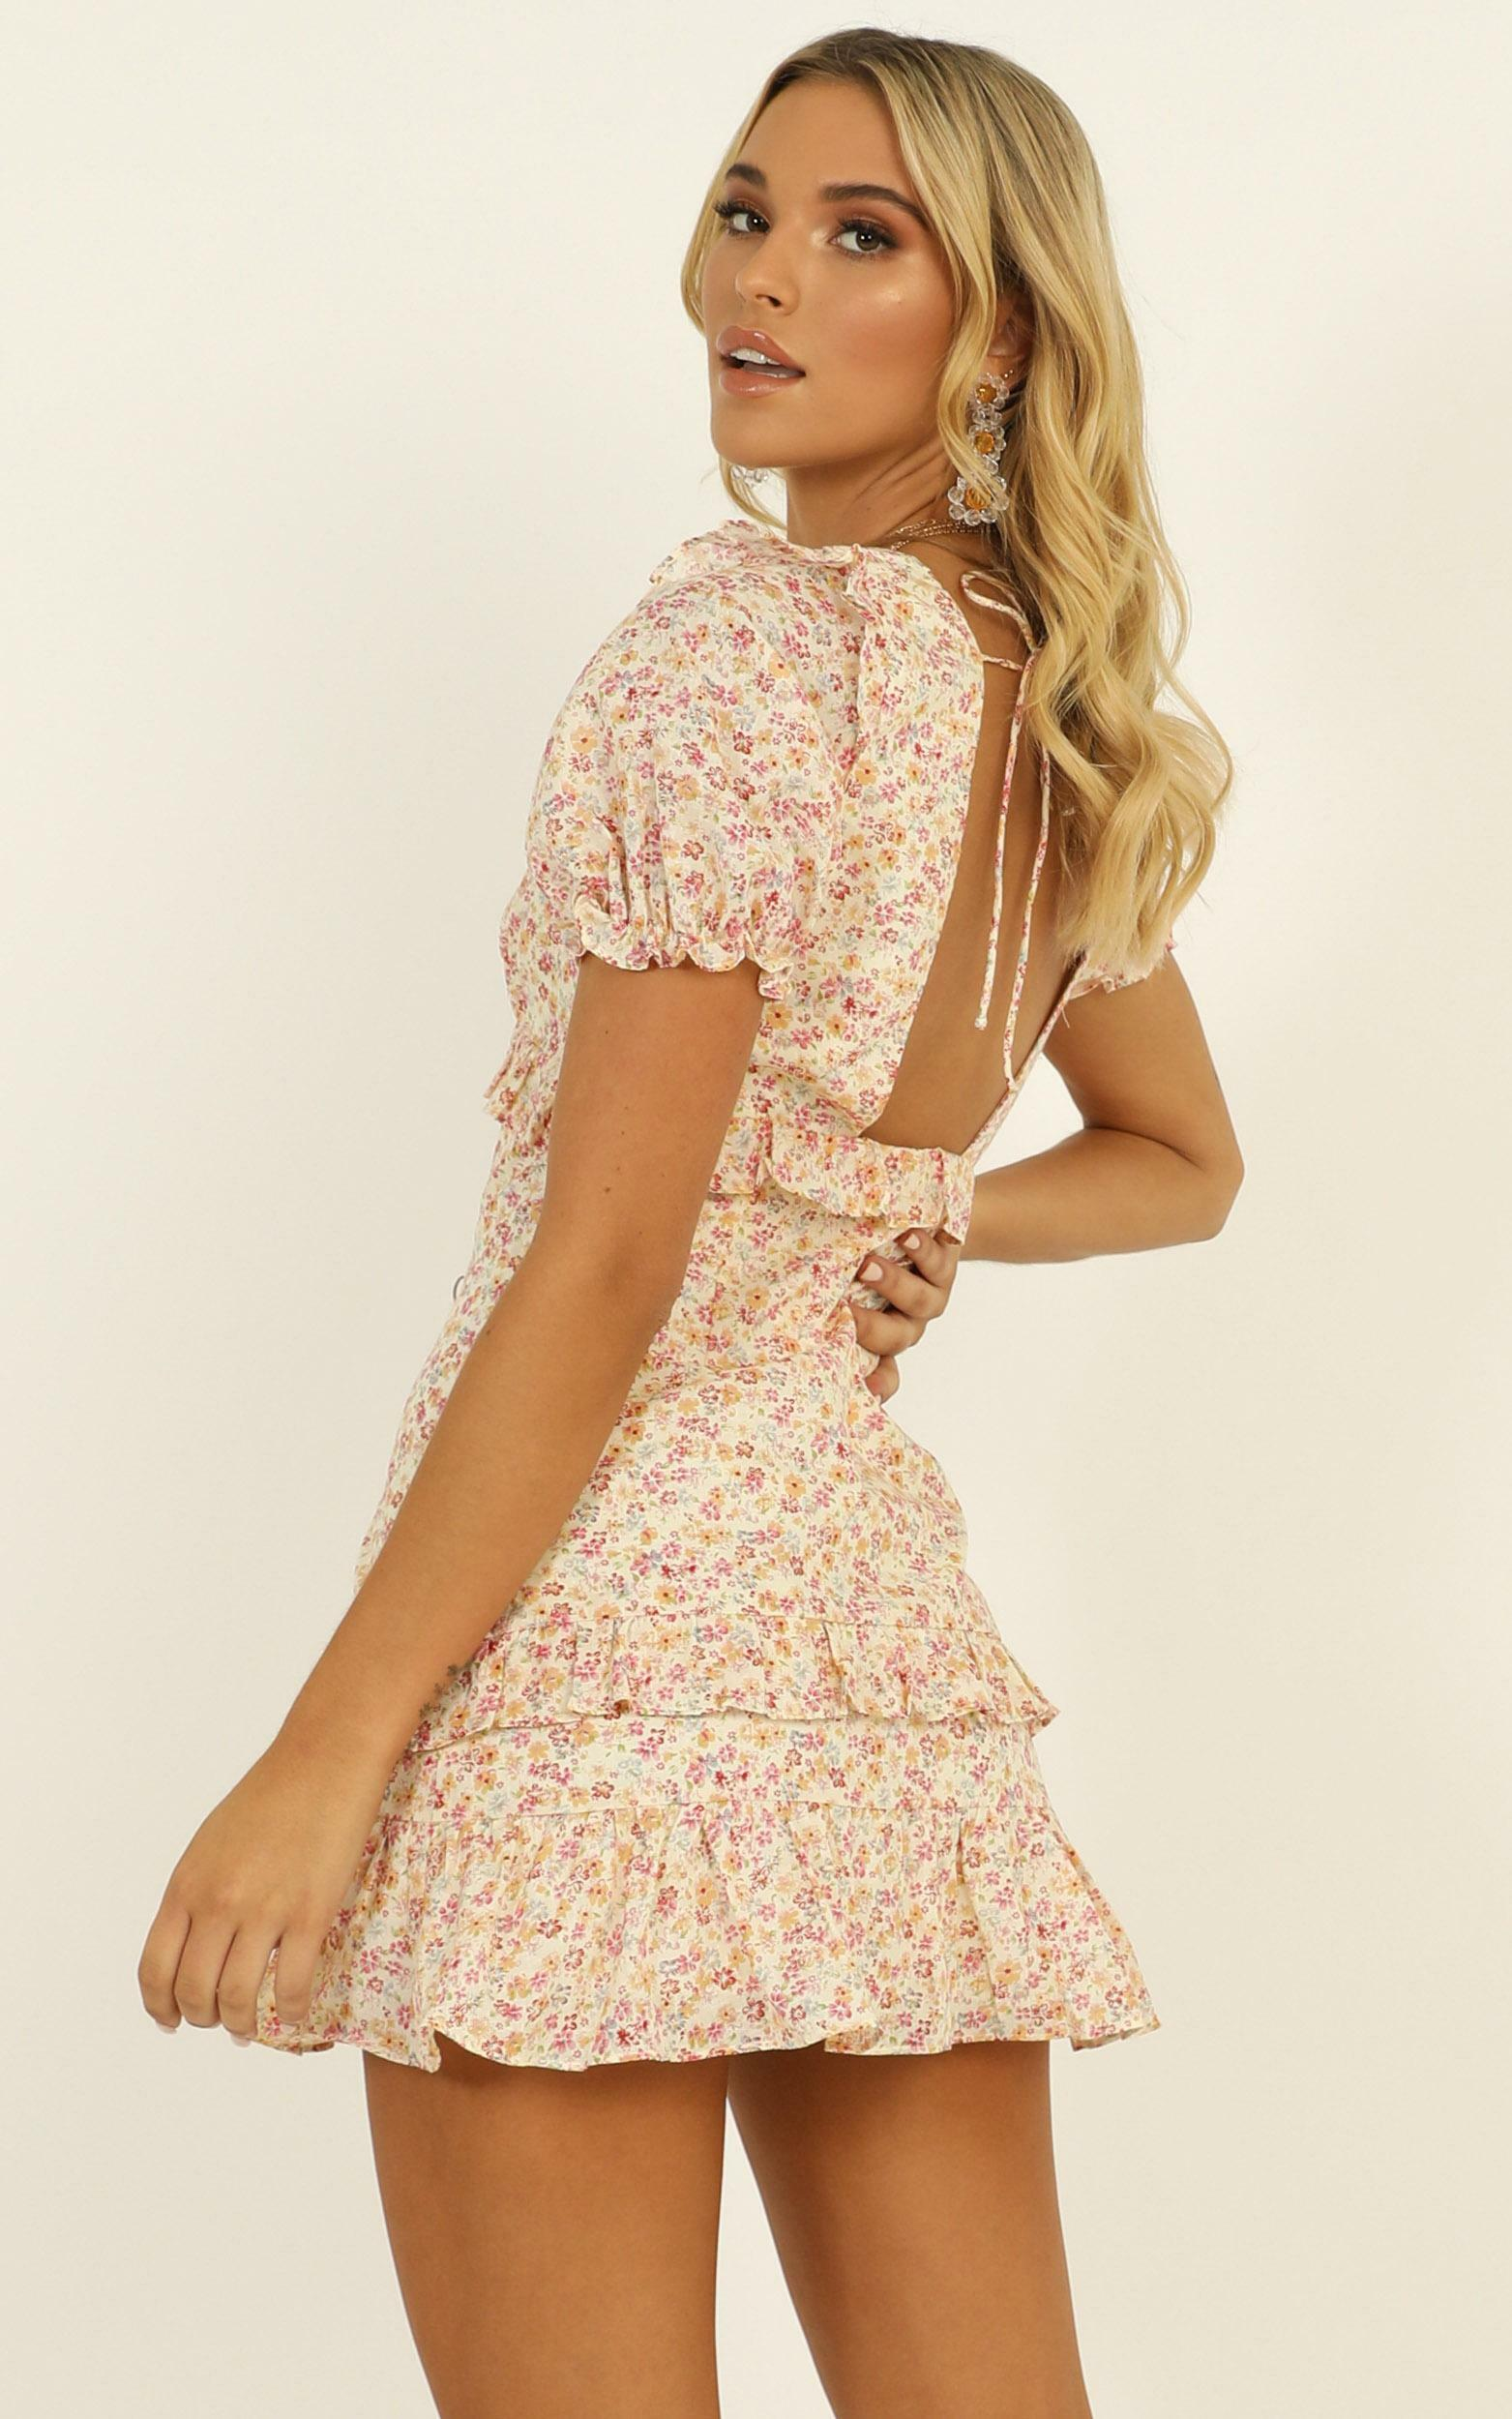 Strawberry Kisses Dress in multi floral - 6 (XS), Multi, hi-res image number null